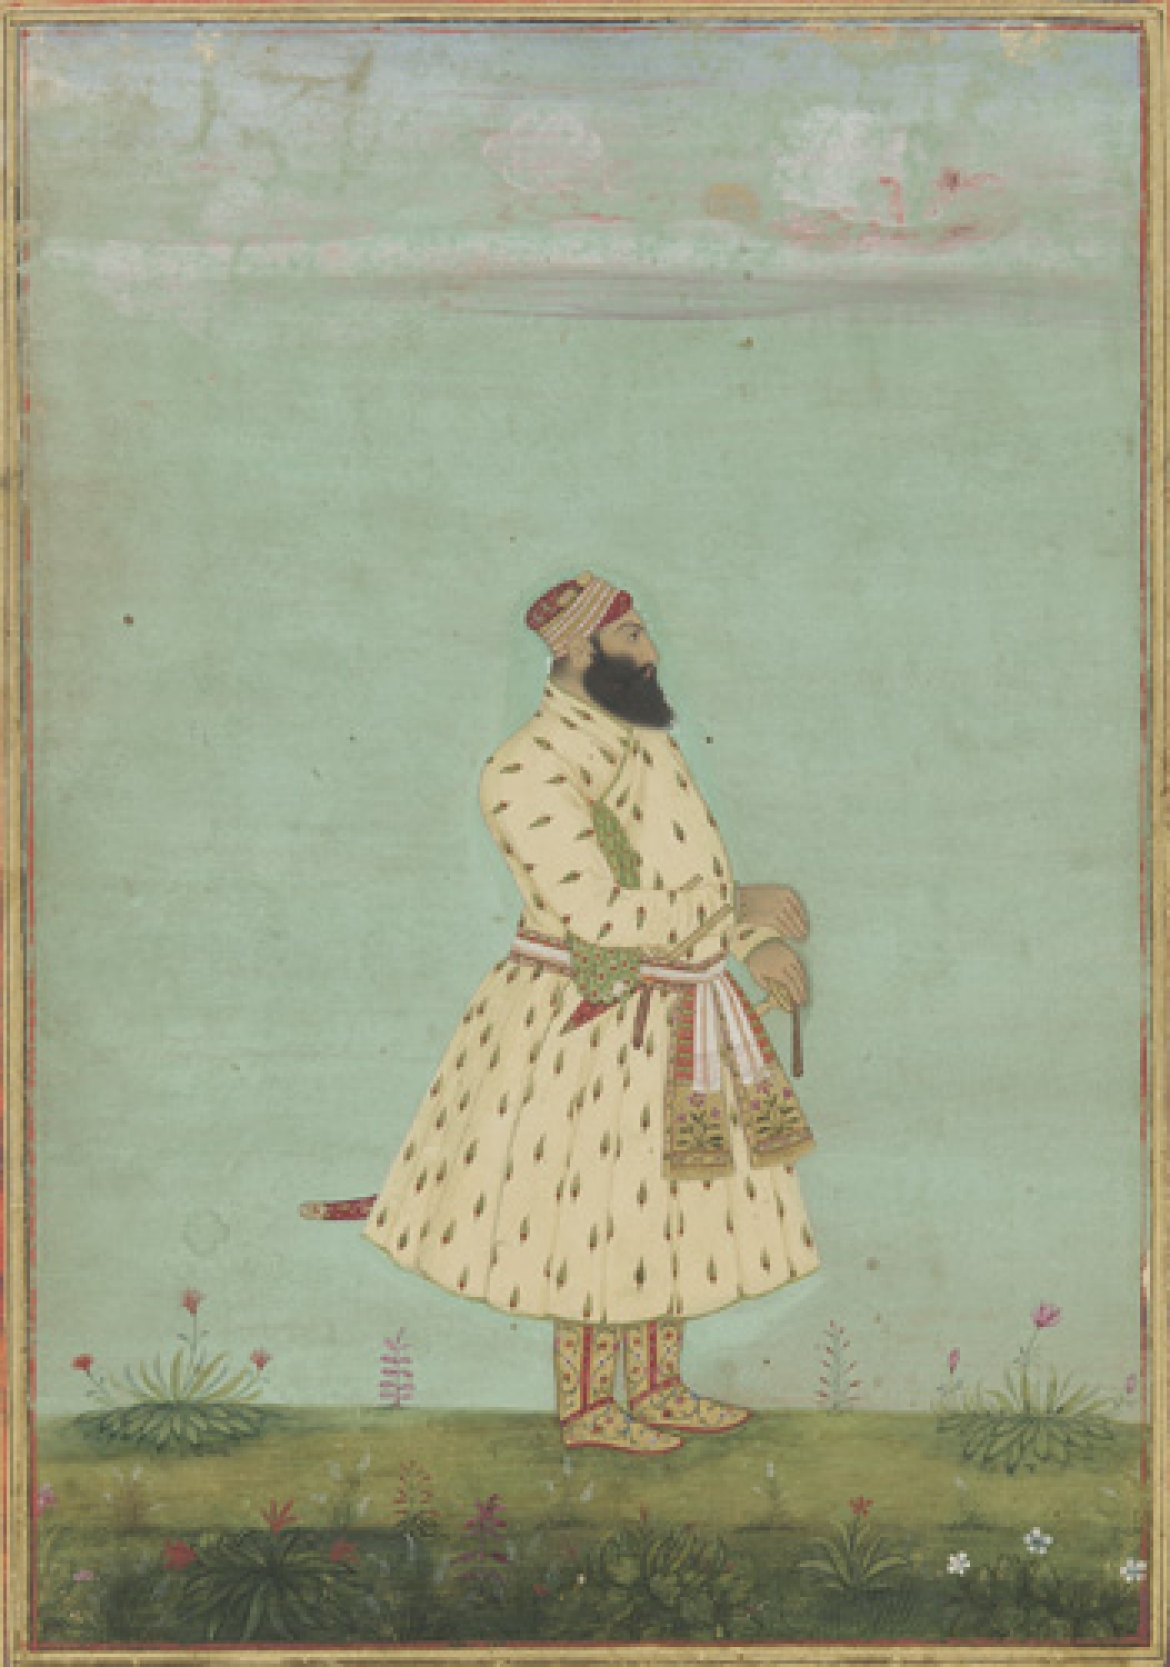 Safdarjung, the second Nawab of Awadh